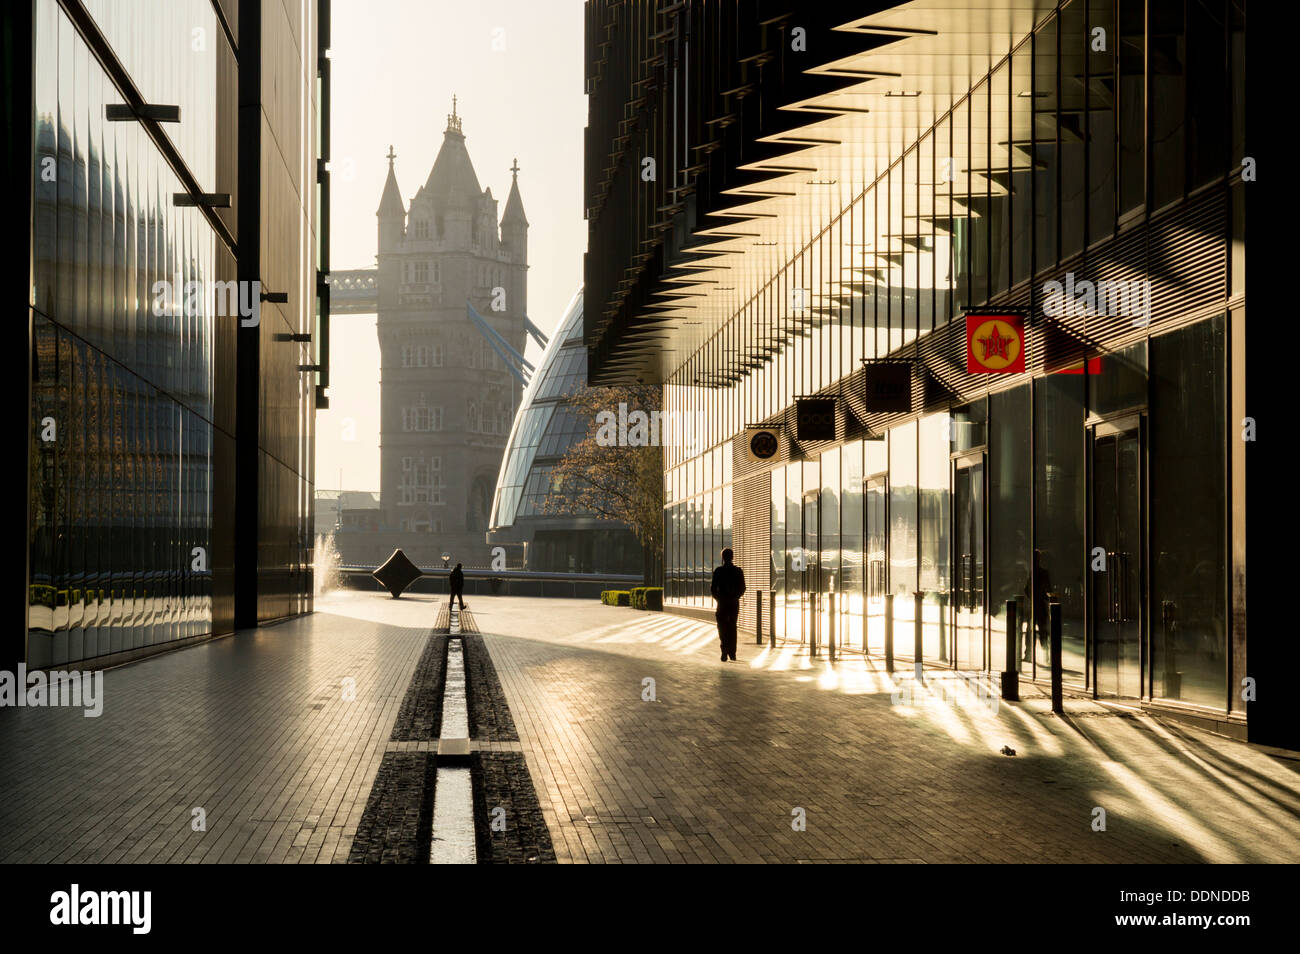 Tower Bridge and office buildings, London, England, UK - Stock Image